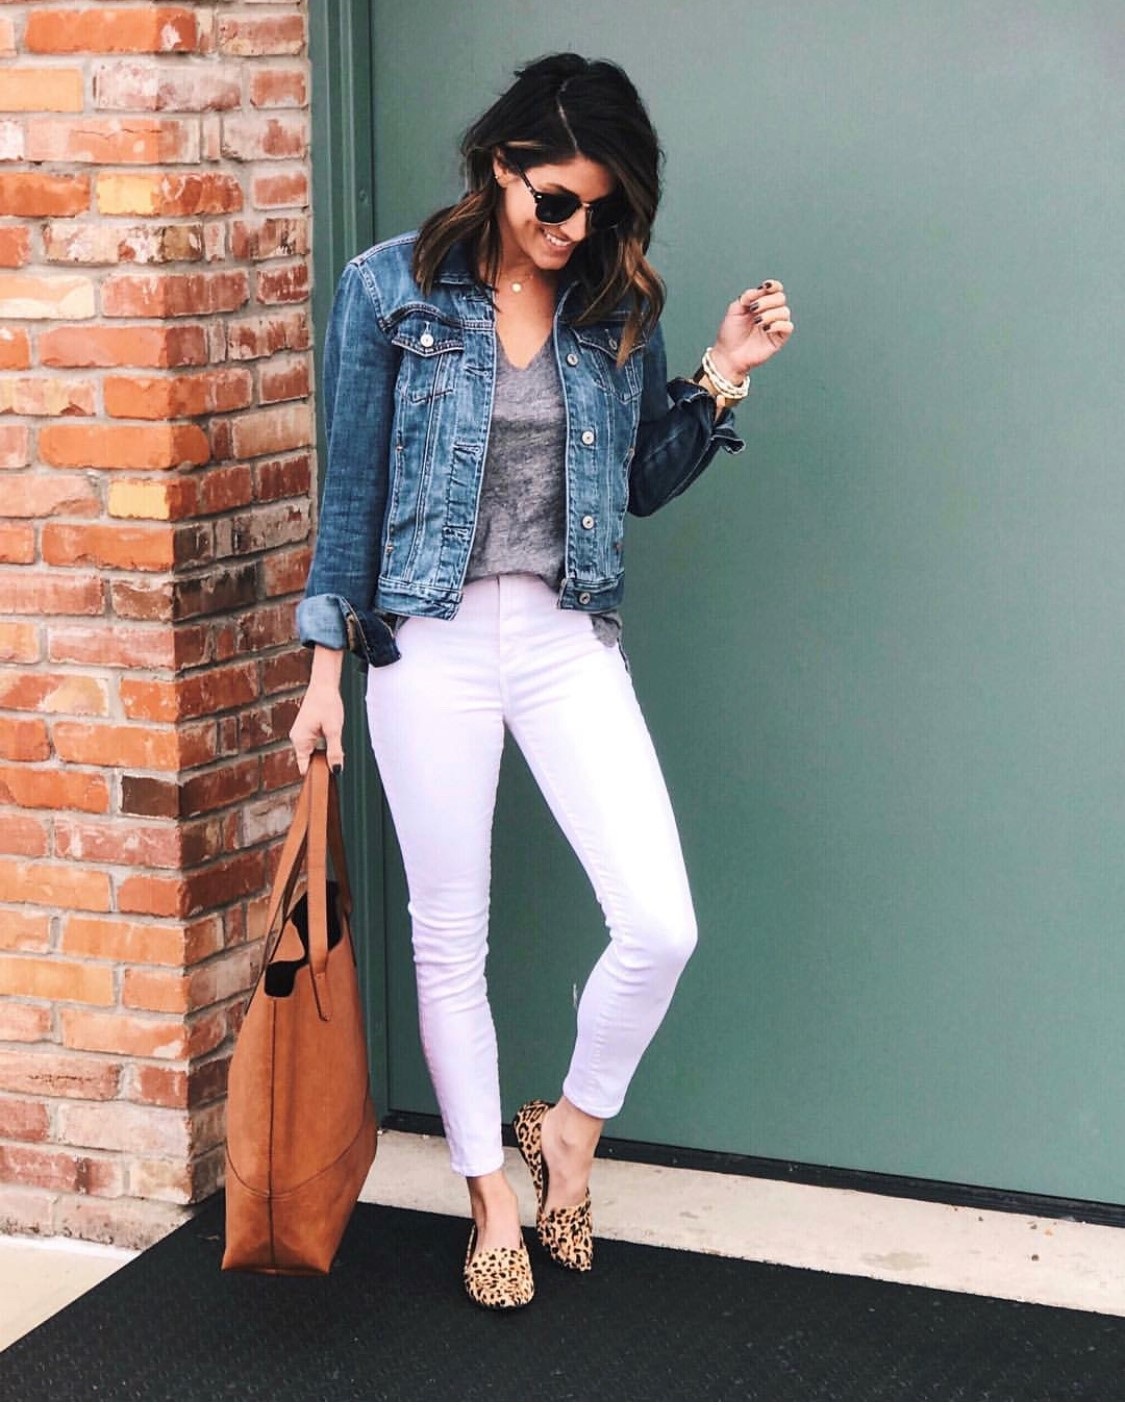 69b59d3f77 15 Ways to Style White Jeans - The Sister Studio